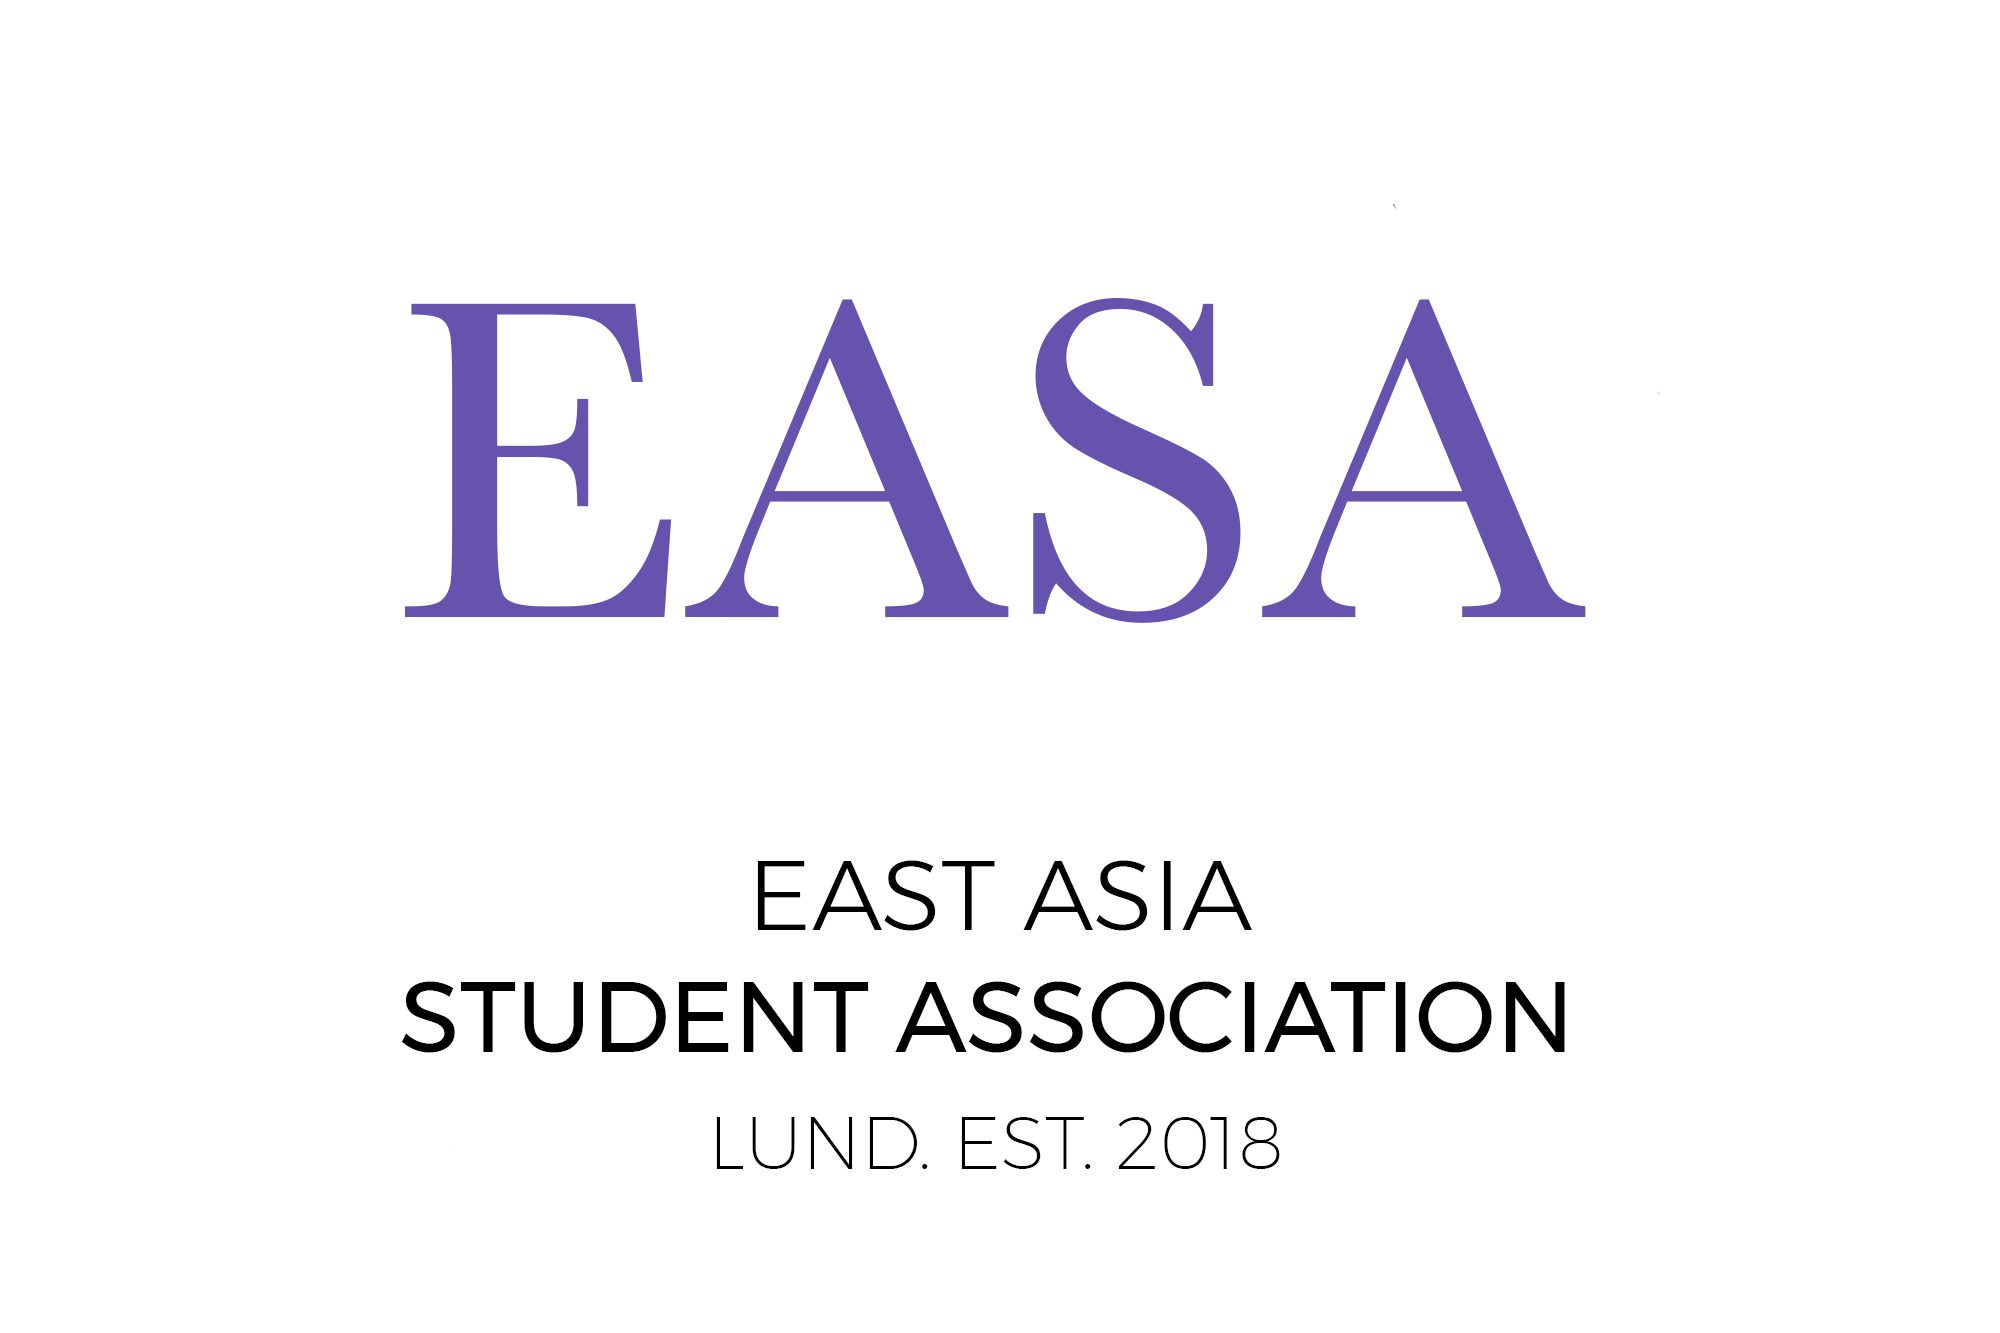 East Asia Student Association Lund